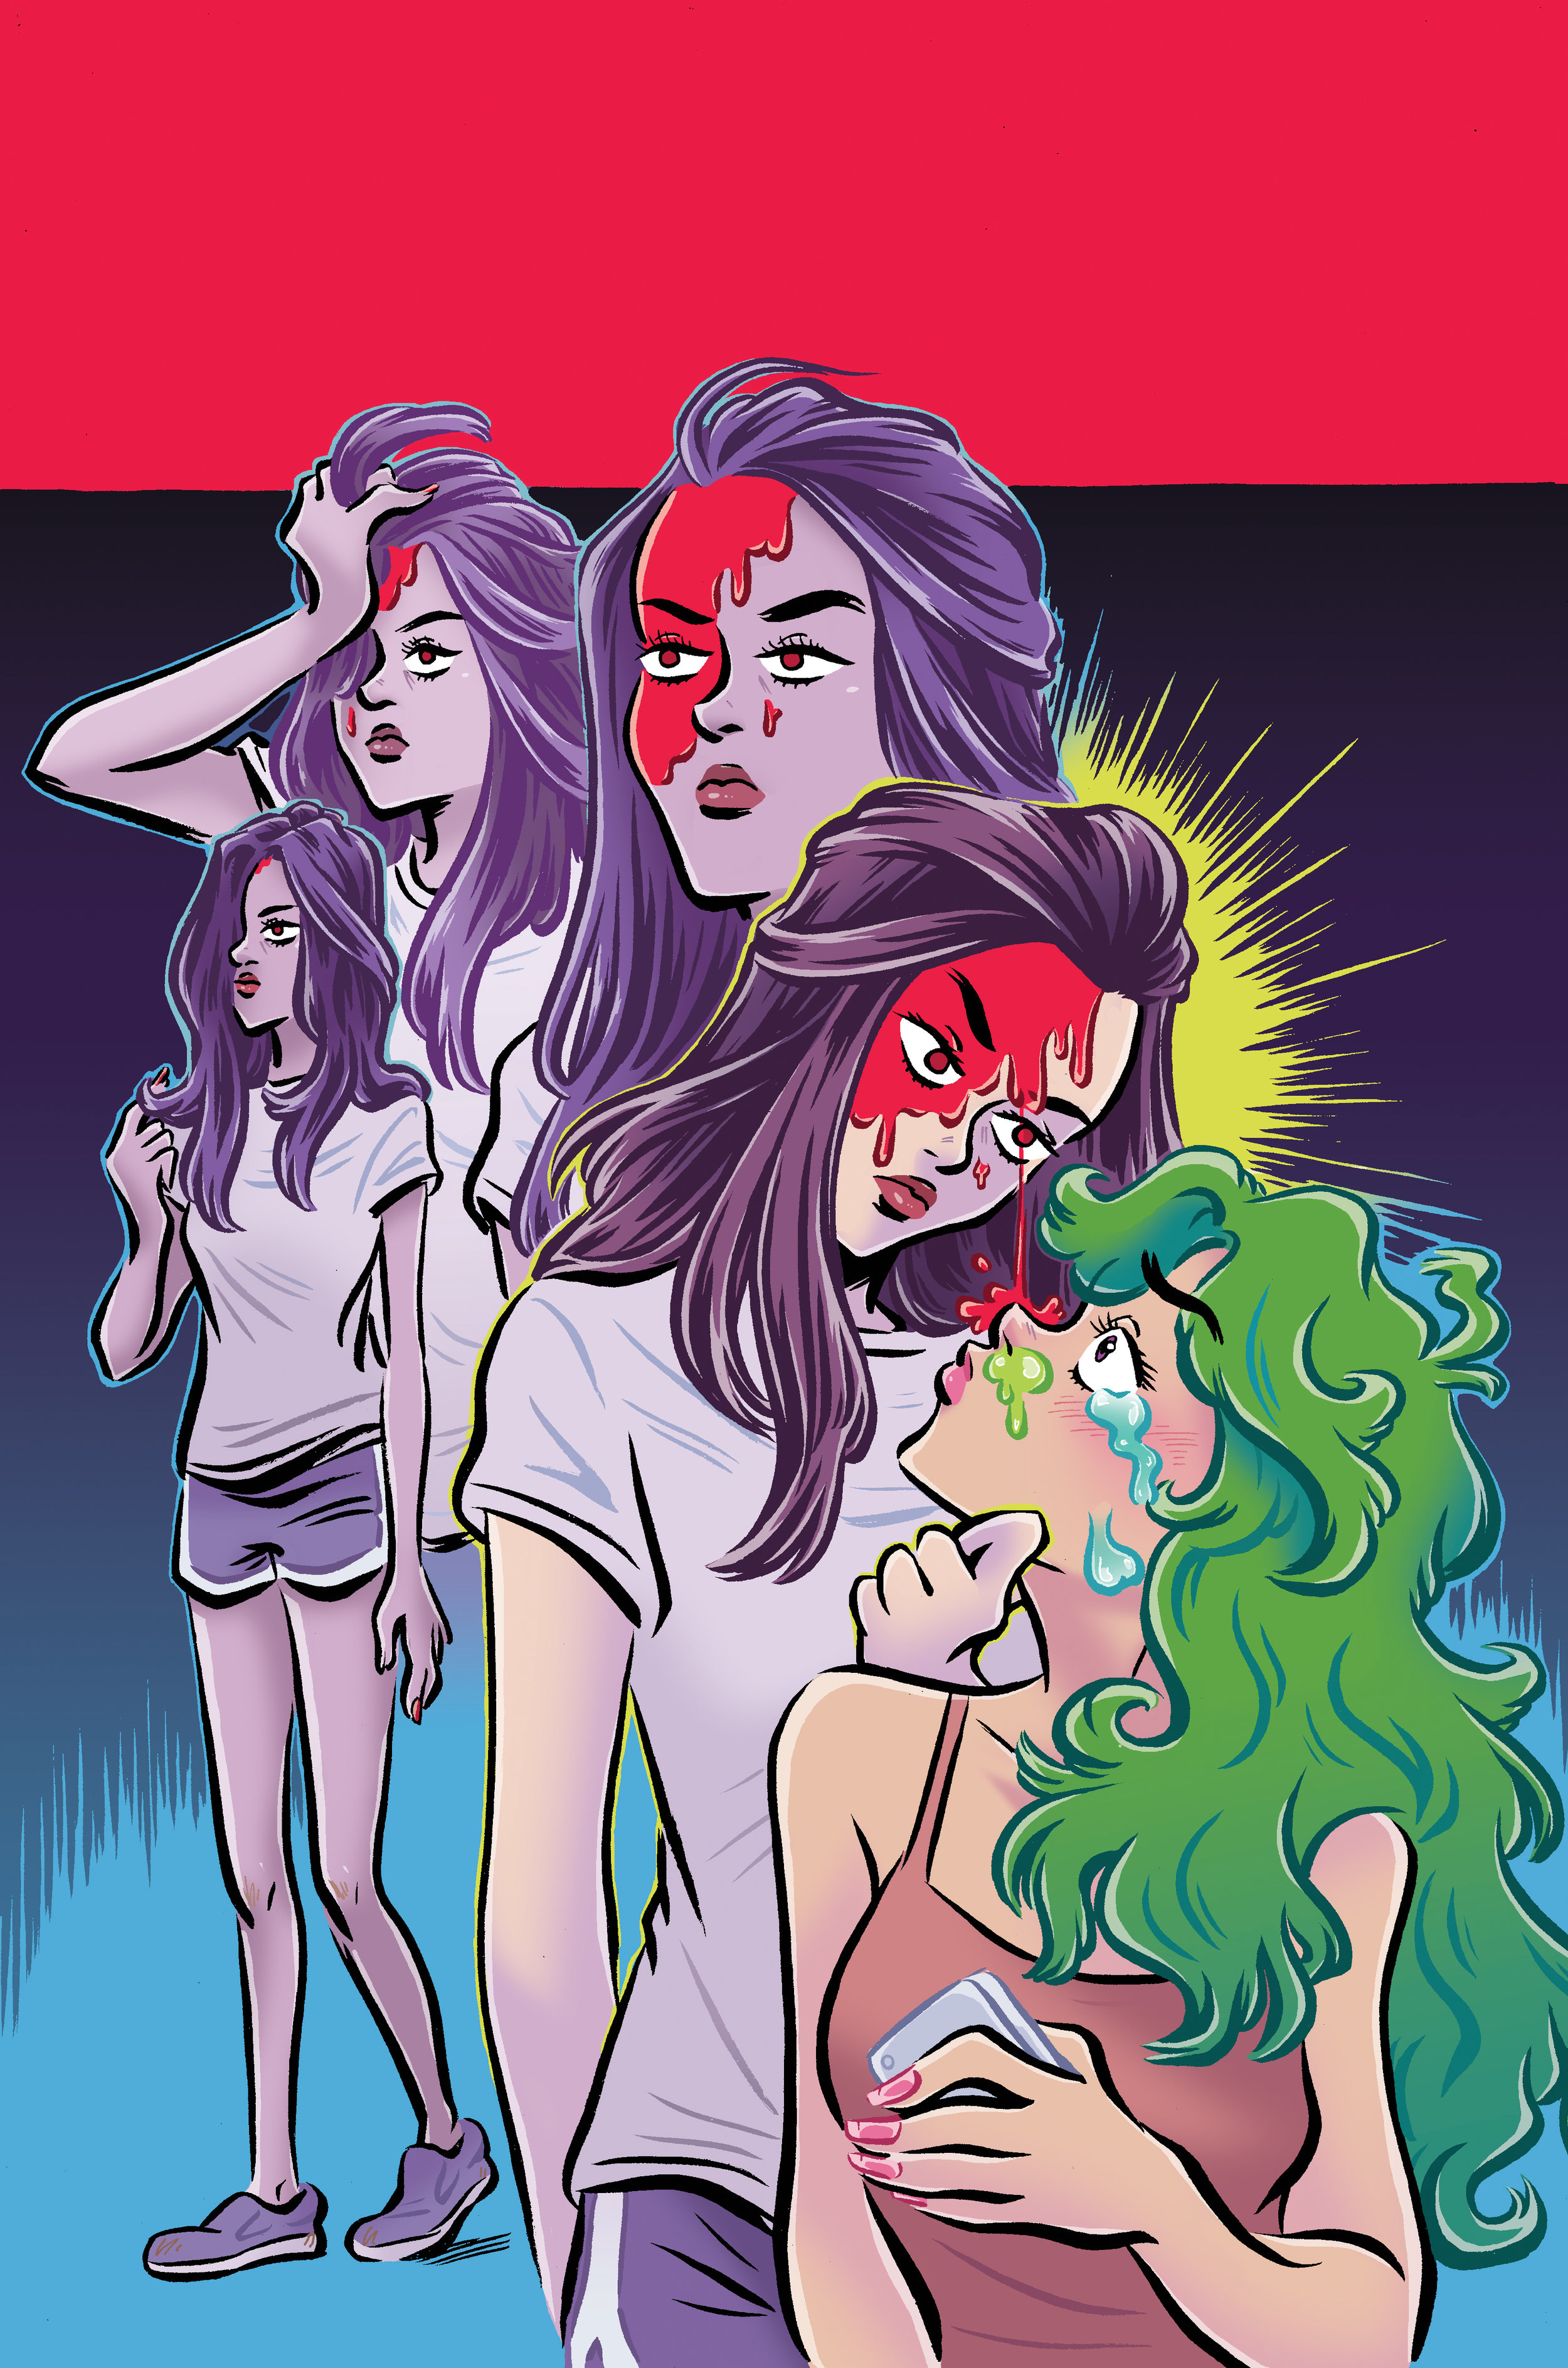 Cover illustration for Snotgirl by Leslie Hung and Bryan Lee O'malley